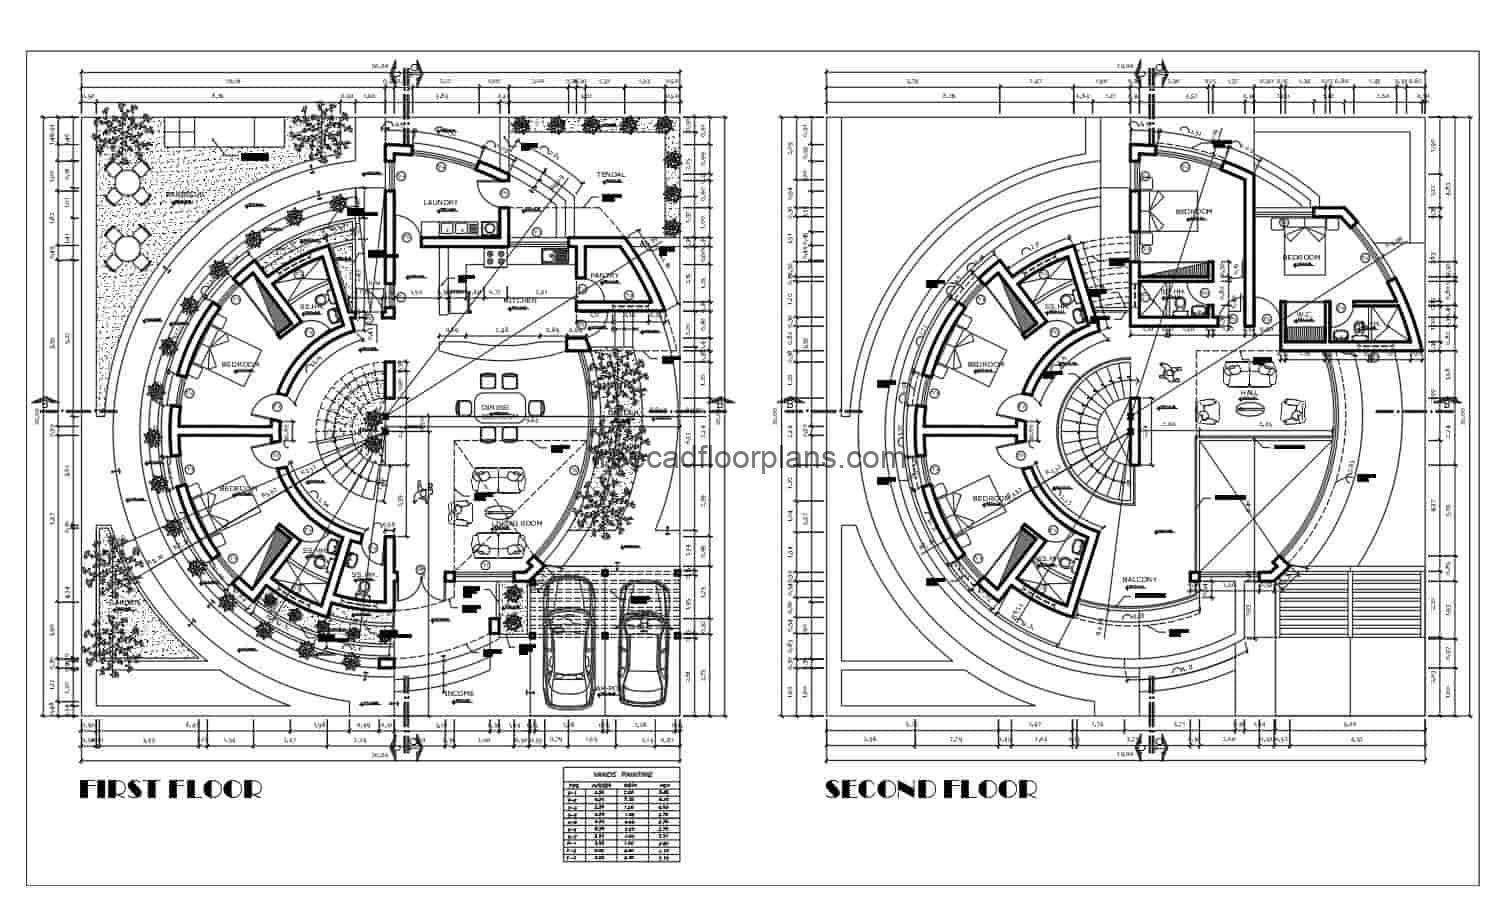 Architectural design of a two-level circular house with a concentric staircase, 2D architectural and dimensional plans, as well as elevations of facades and sections. Six rooms in total, four in the second level and two in the first level, green areas around the house. 2D blueprints for free download with interior and exterior autocad furniture blocks